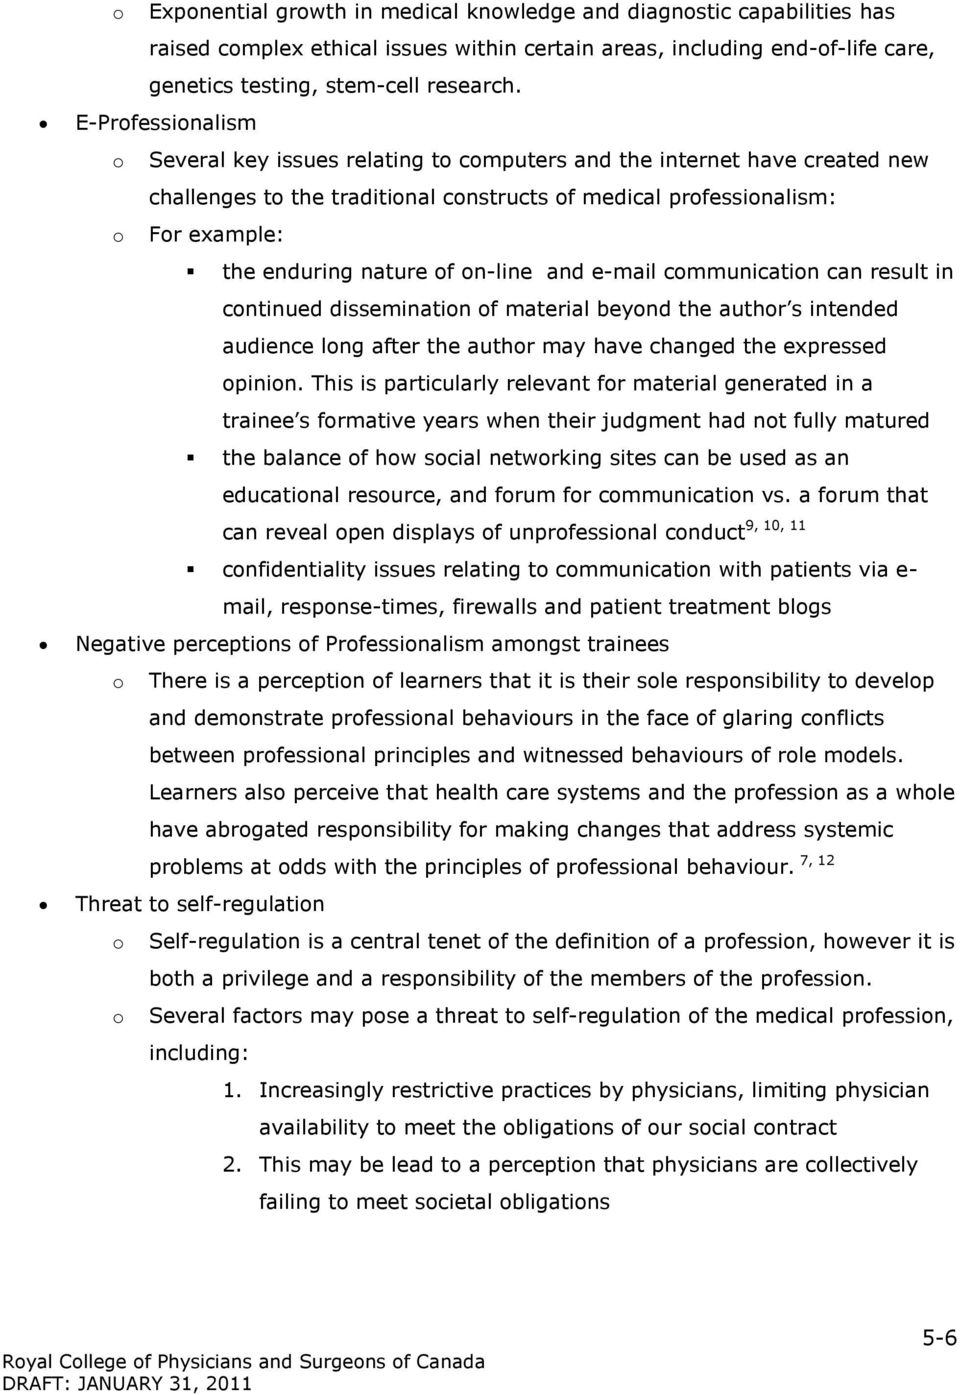 Several key issues relating to computers and the internet have created new challenges to the traditional constructs of medical professionalism: For example: the enduring nature of on-line and e-mail